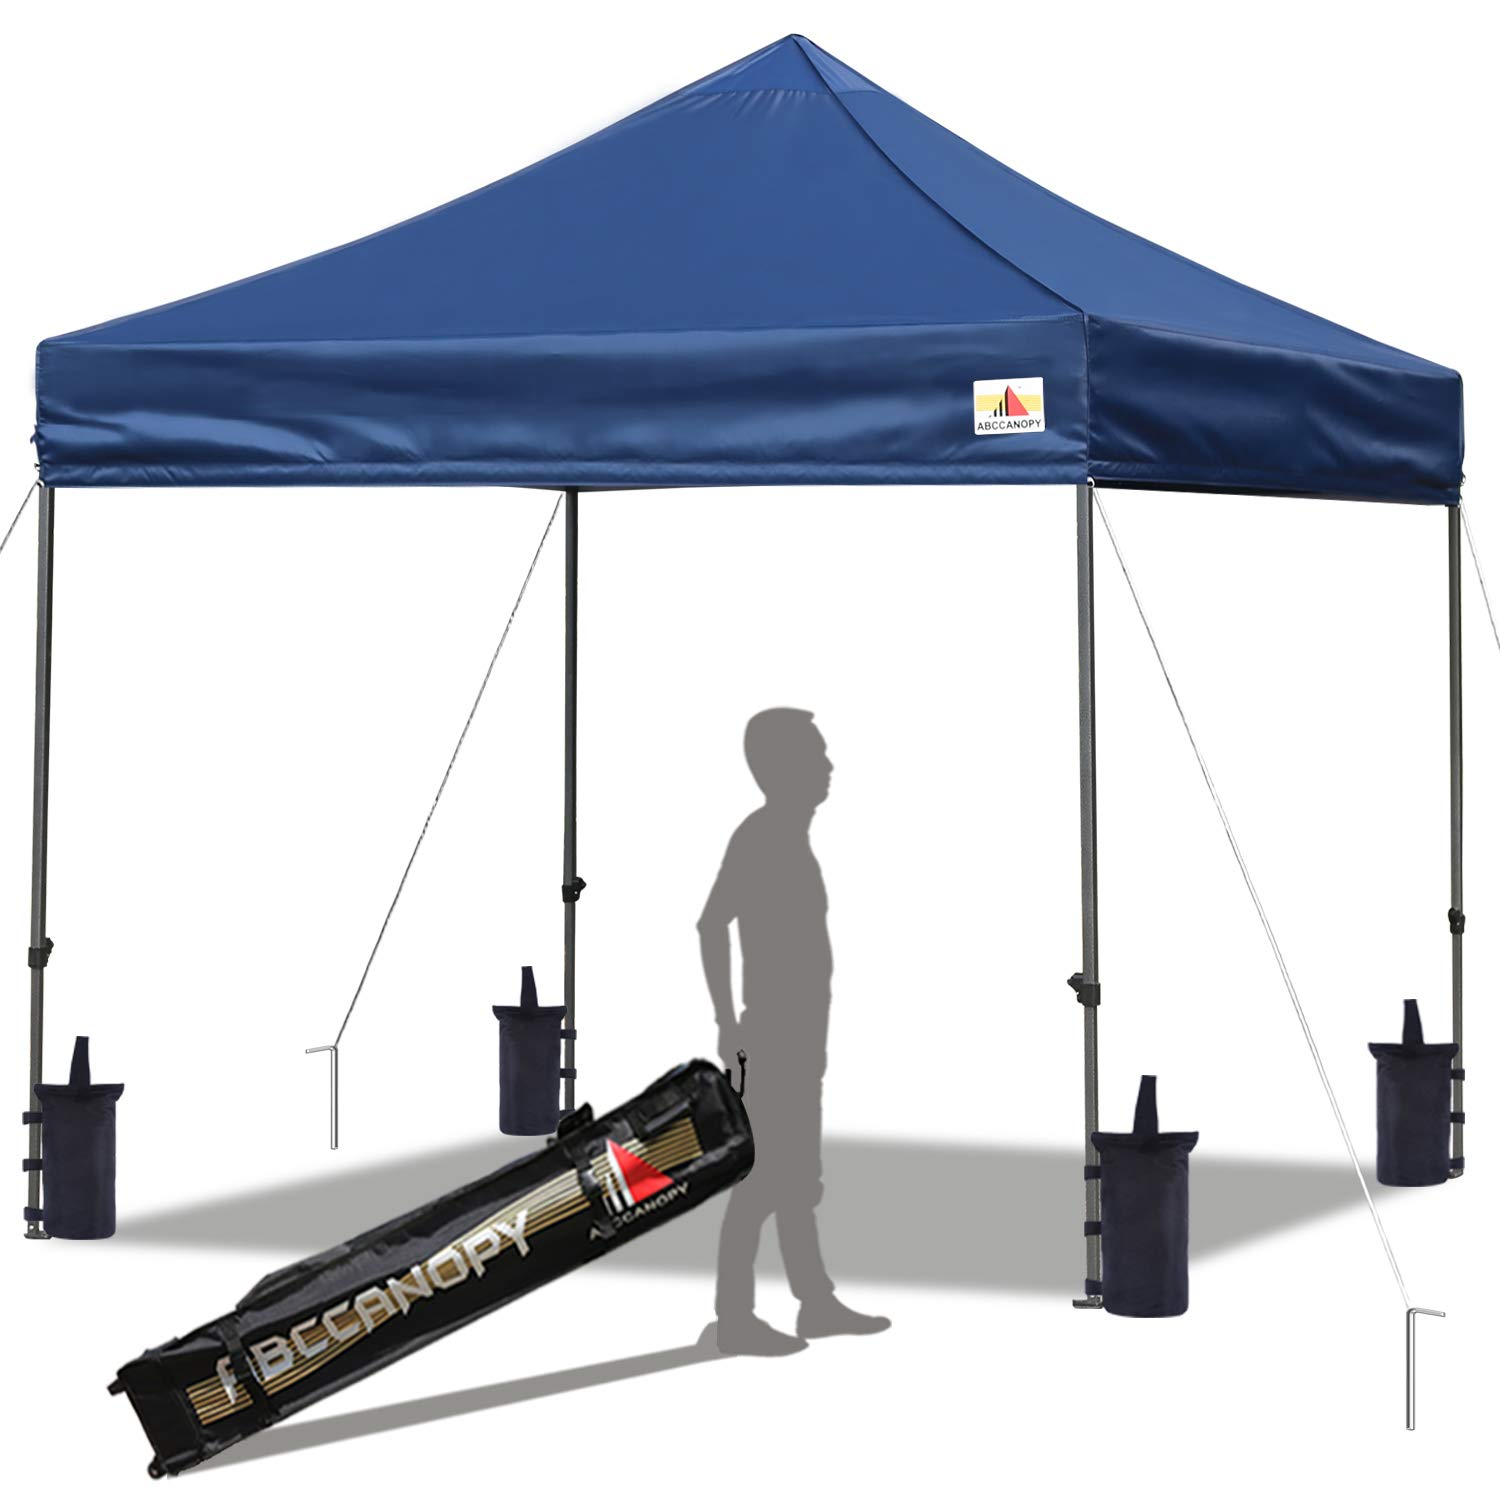 ABCCANOPY Pop up Canopy Tent Commercial Instant Shelter with Wheeled Carry Bag, Bonus 4 Canopy Sand Bags, 10x10 FT Navy Blue